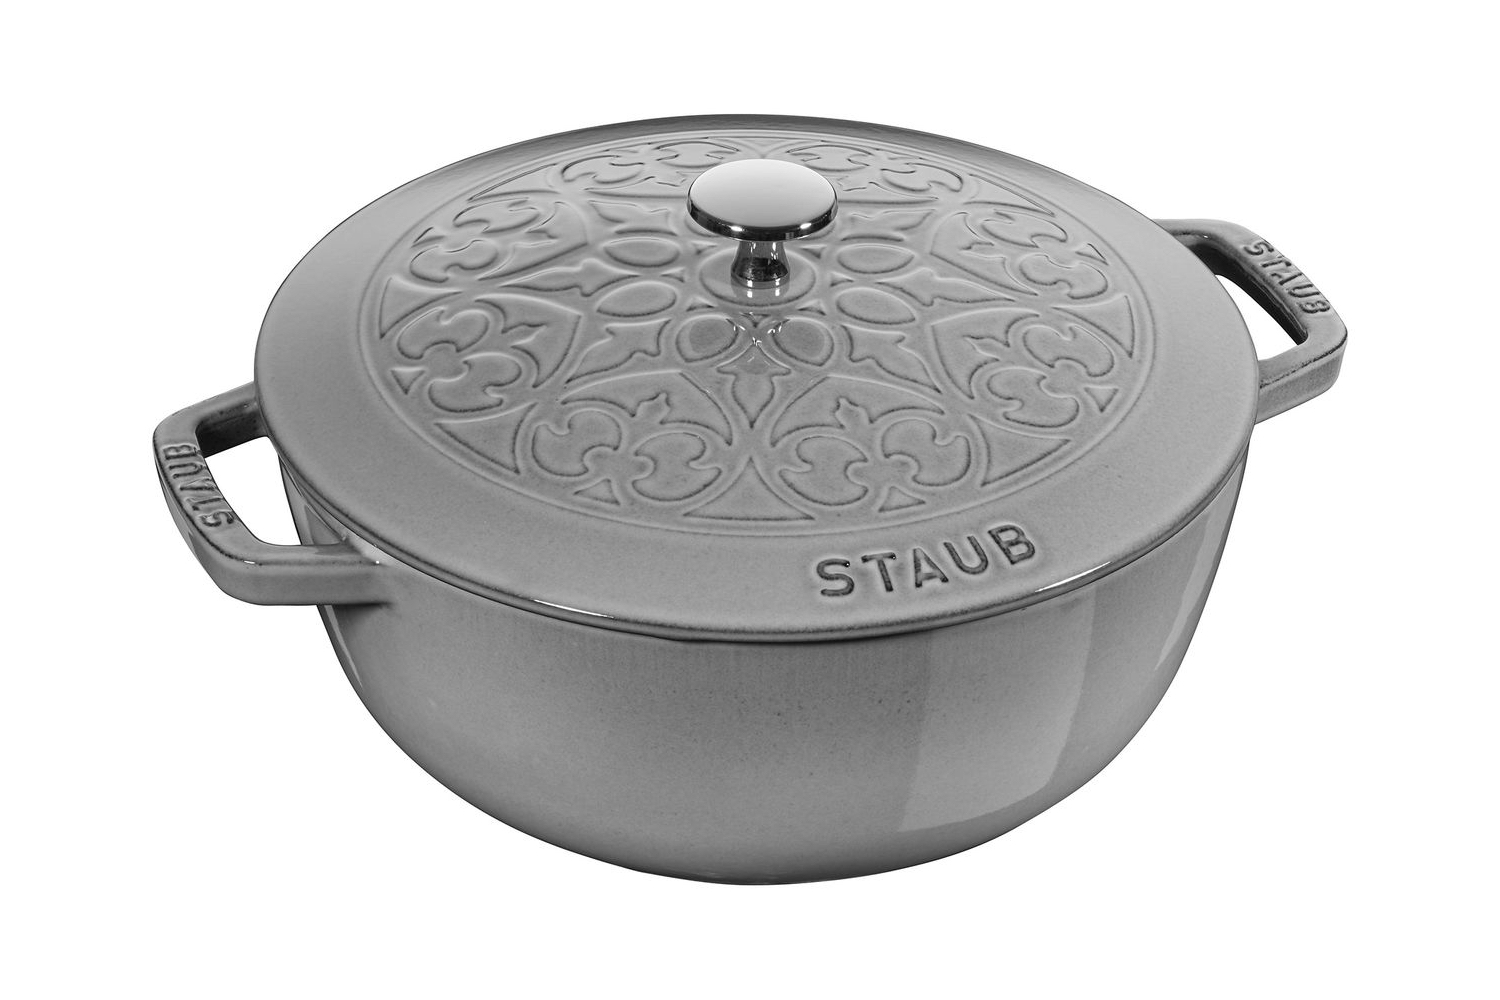 Staub Cast Iron 3 3/4 qt. Essential Fleur De Lis French Oven w/Stainless Steel Knob - Graphite Grey